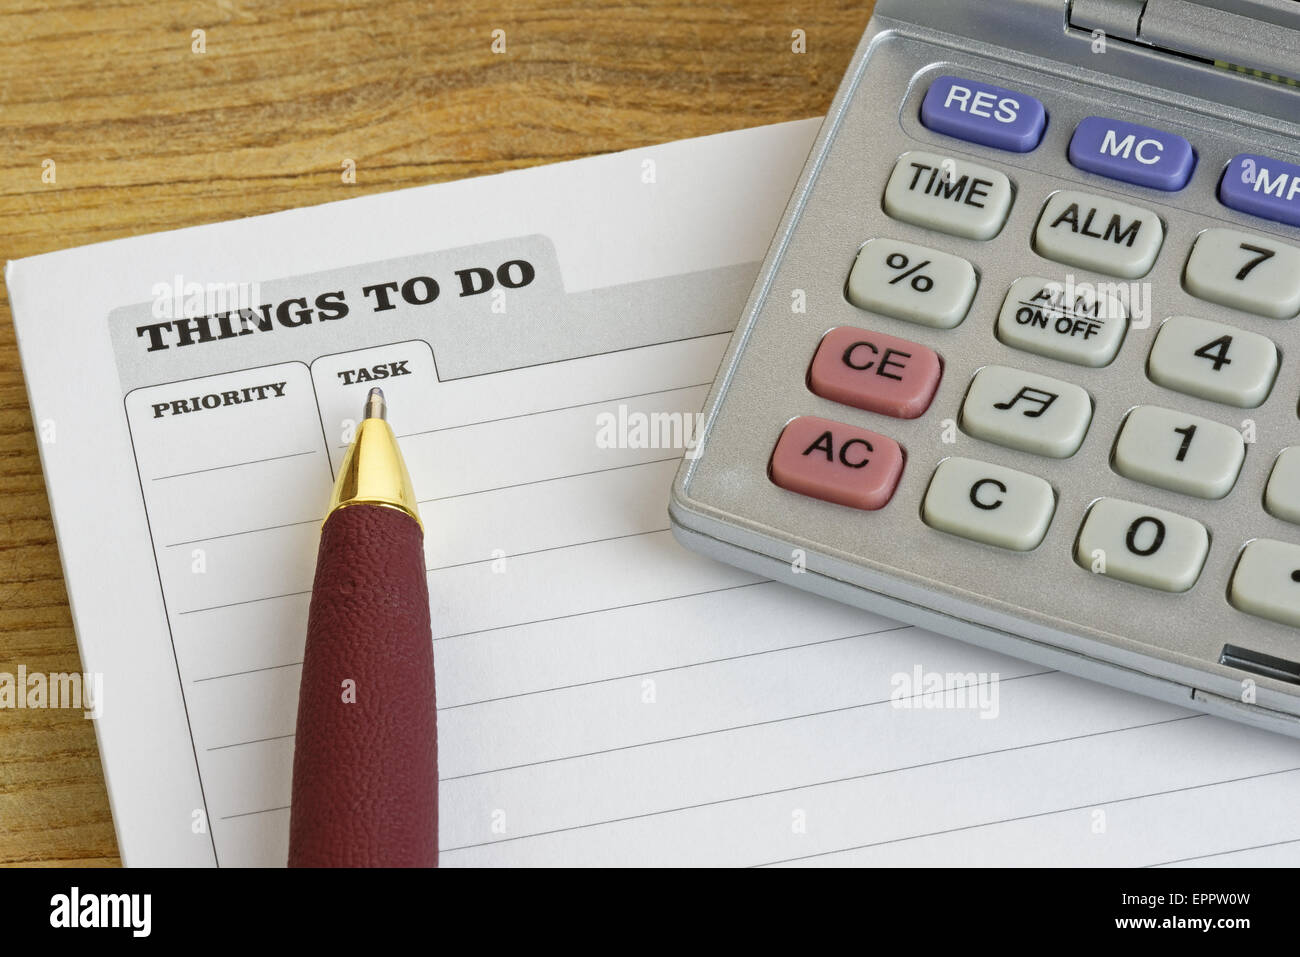 Pen and calculator on a 'Things To Do' pad - Stock Image